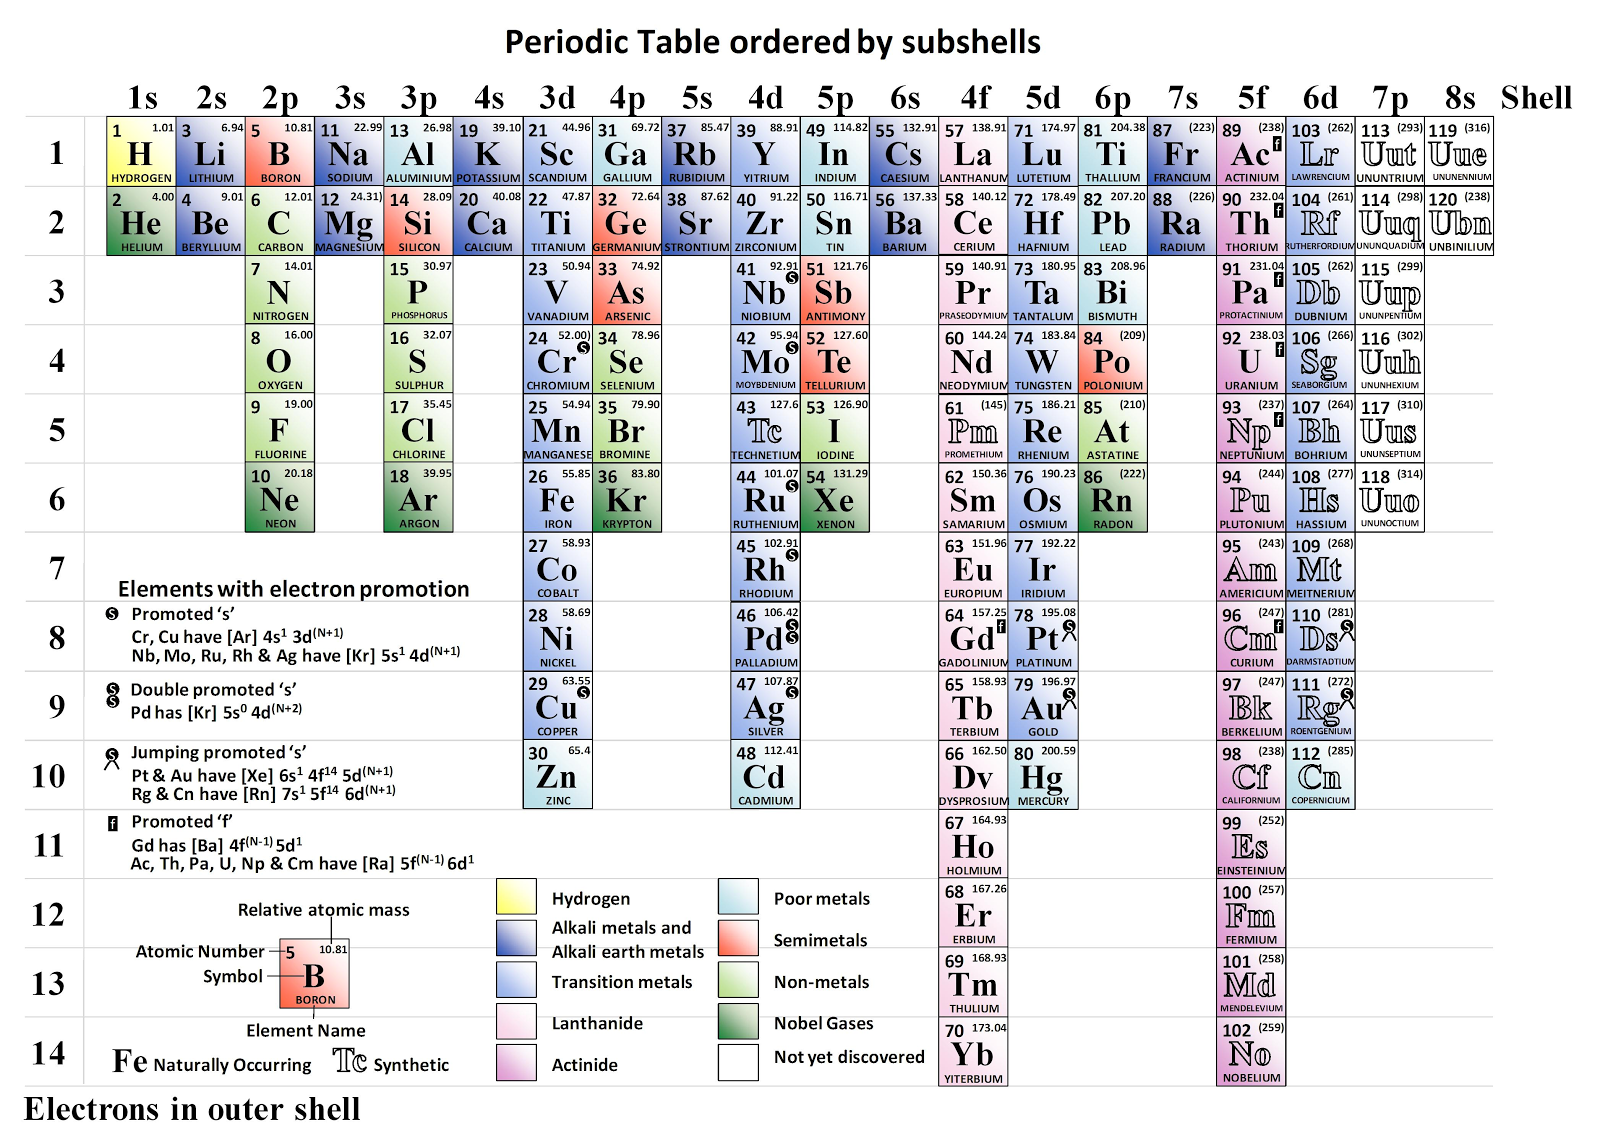 Chemistry World The Periodic Table Ordered By Subshells